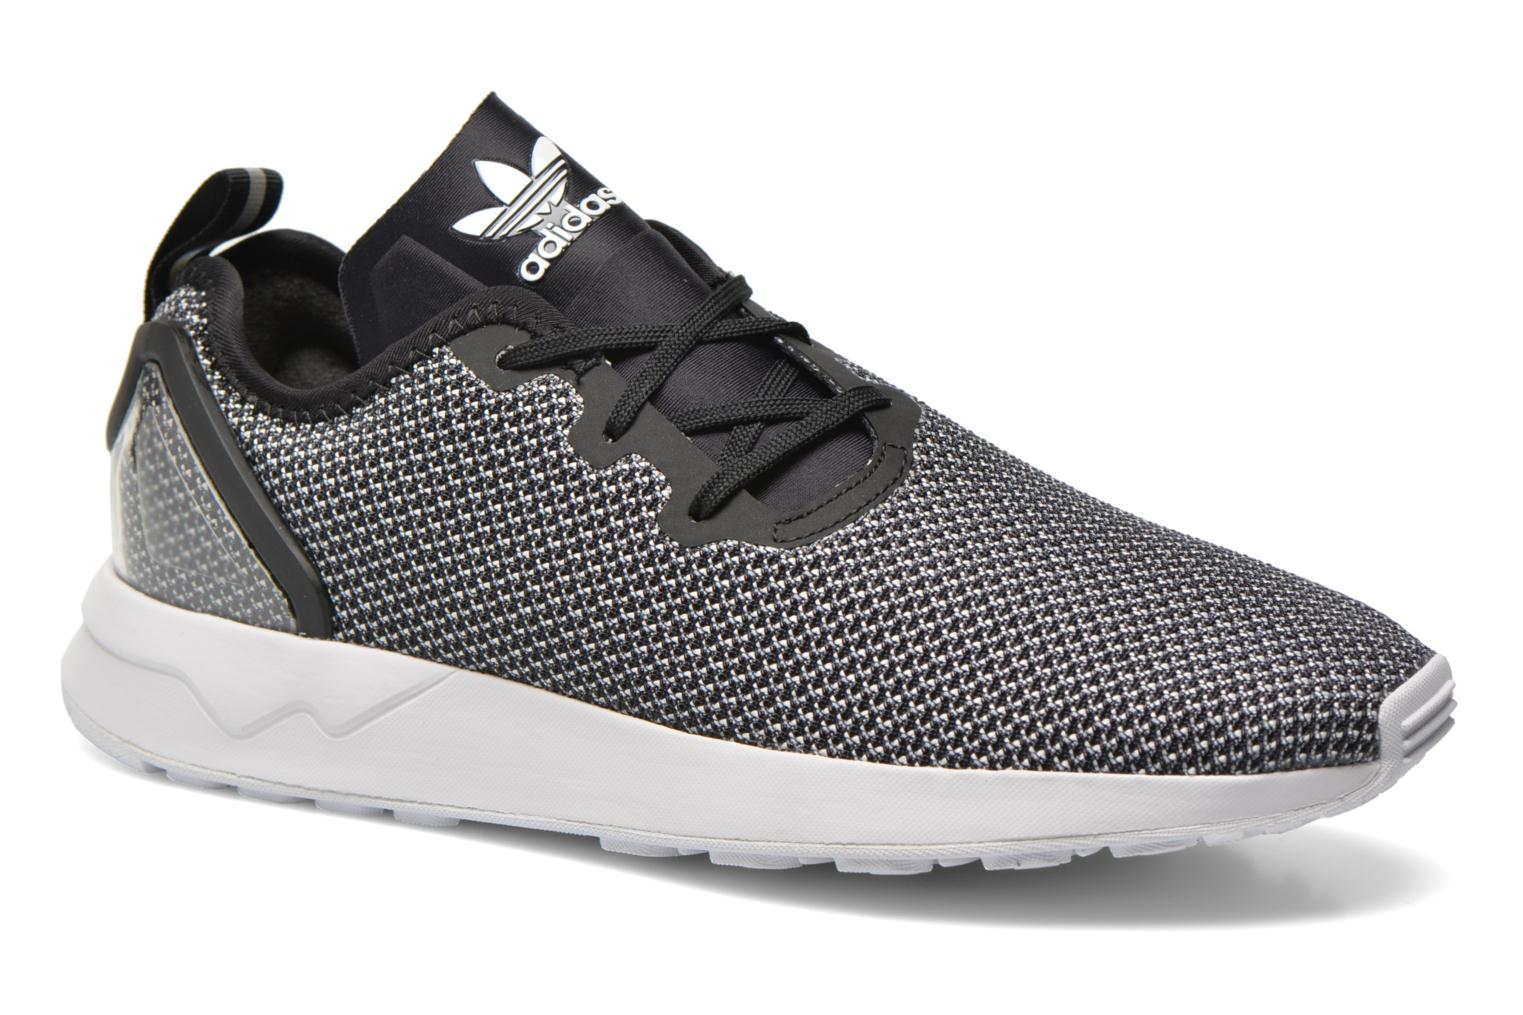 Baskets Adidas Originals Zx Flux Adv Asym Gris vue détail/paire